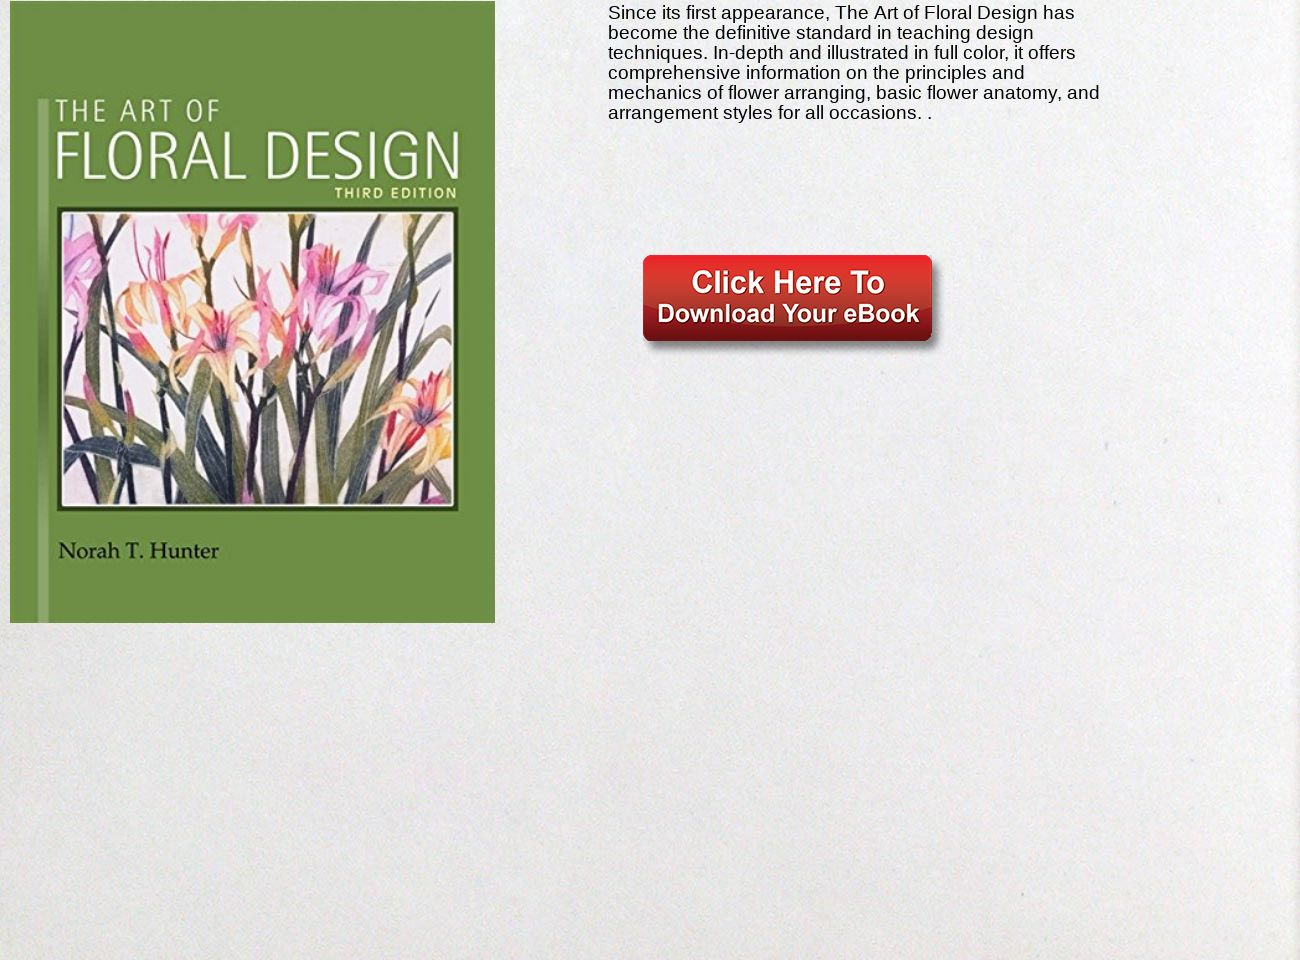 Download Ebook The Art of Floral Design PDF: text, images, music